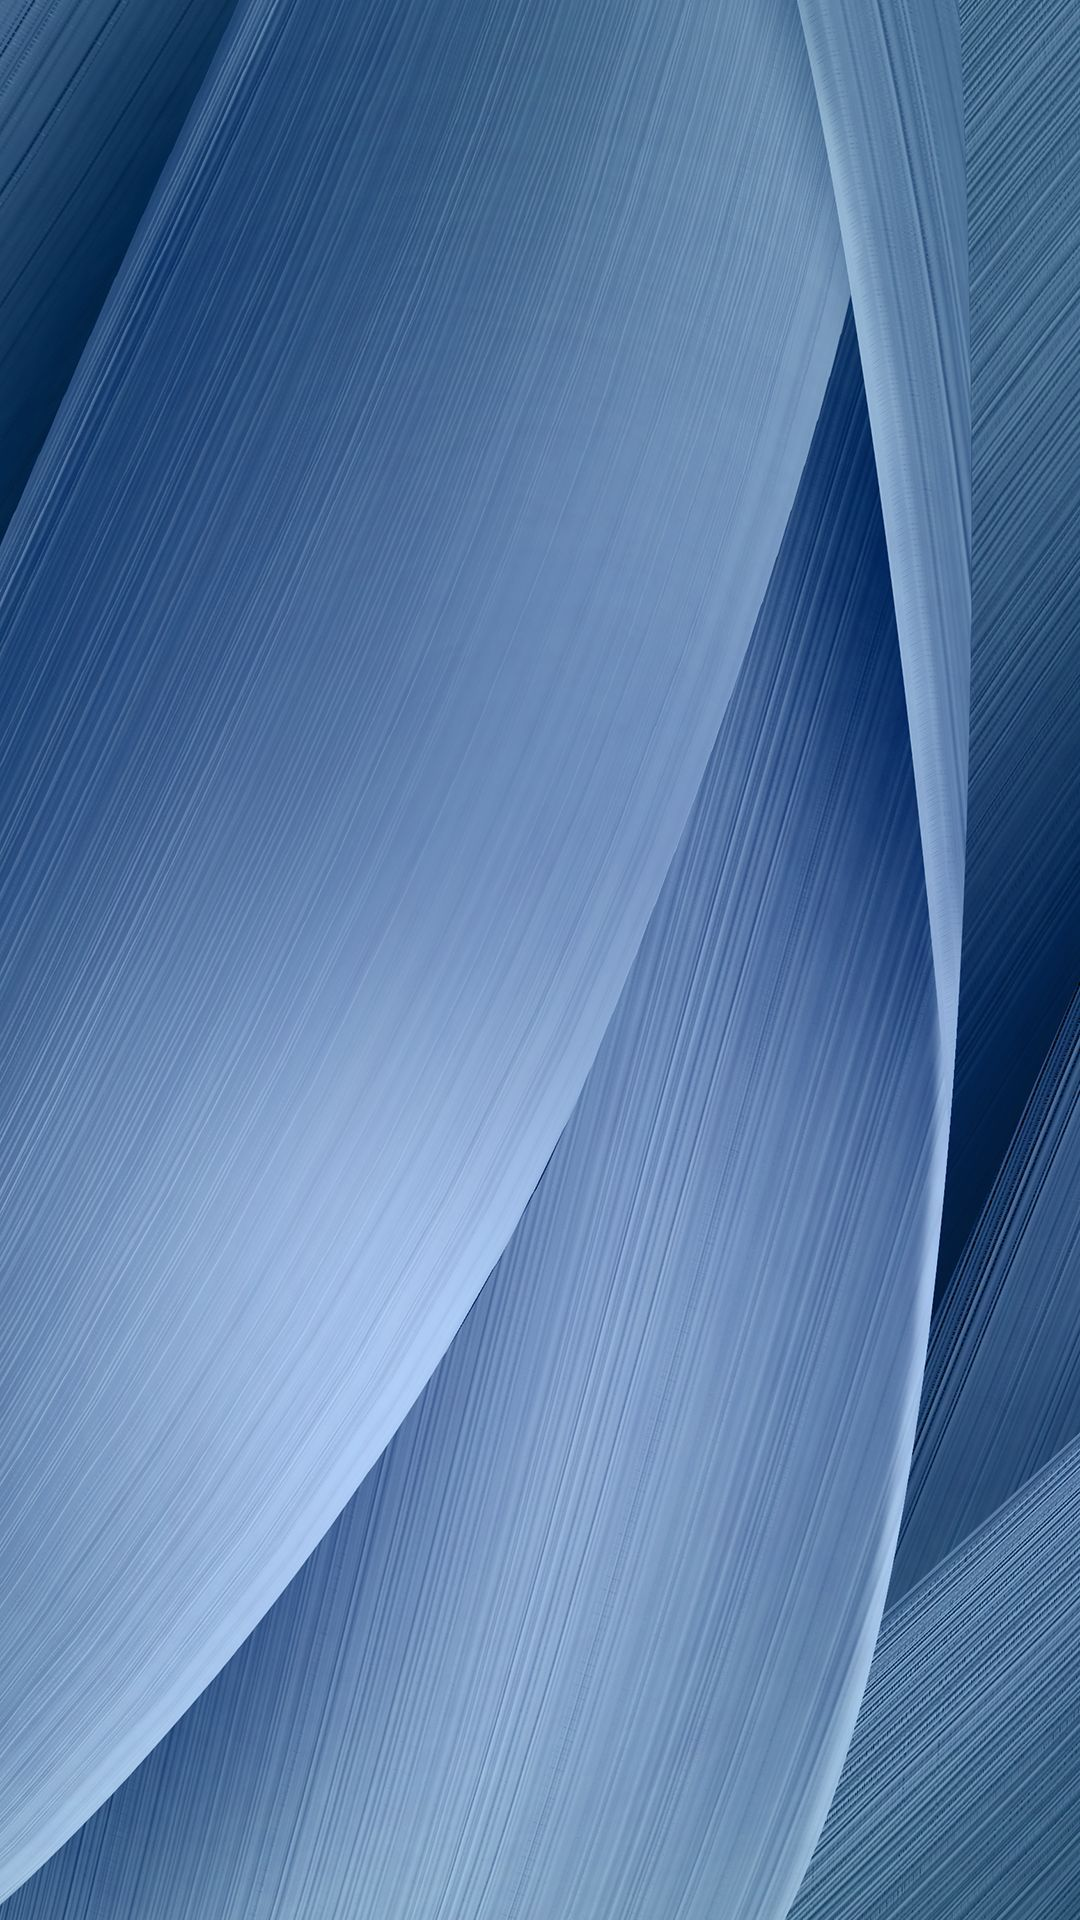 Pin by Vactual Papers on Mobile Wallpapers Abstract